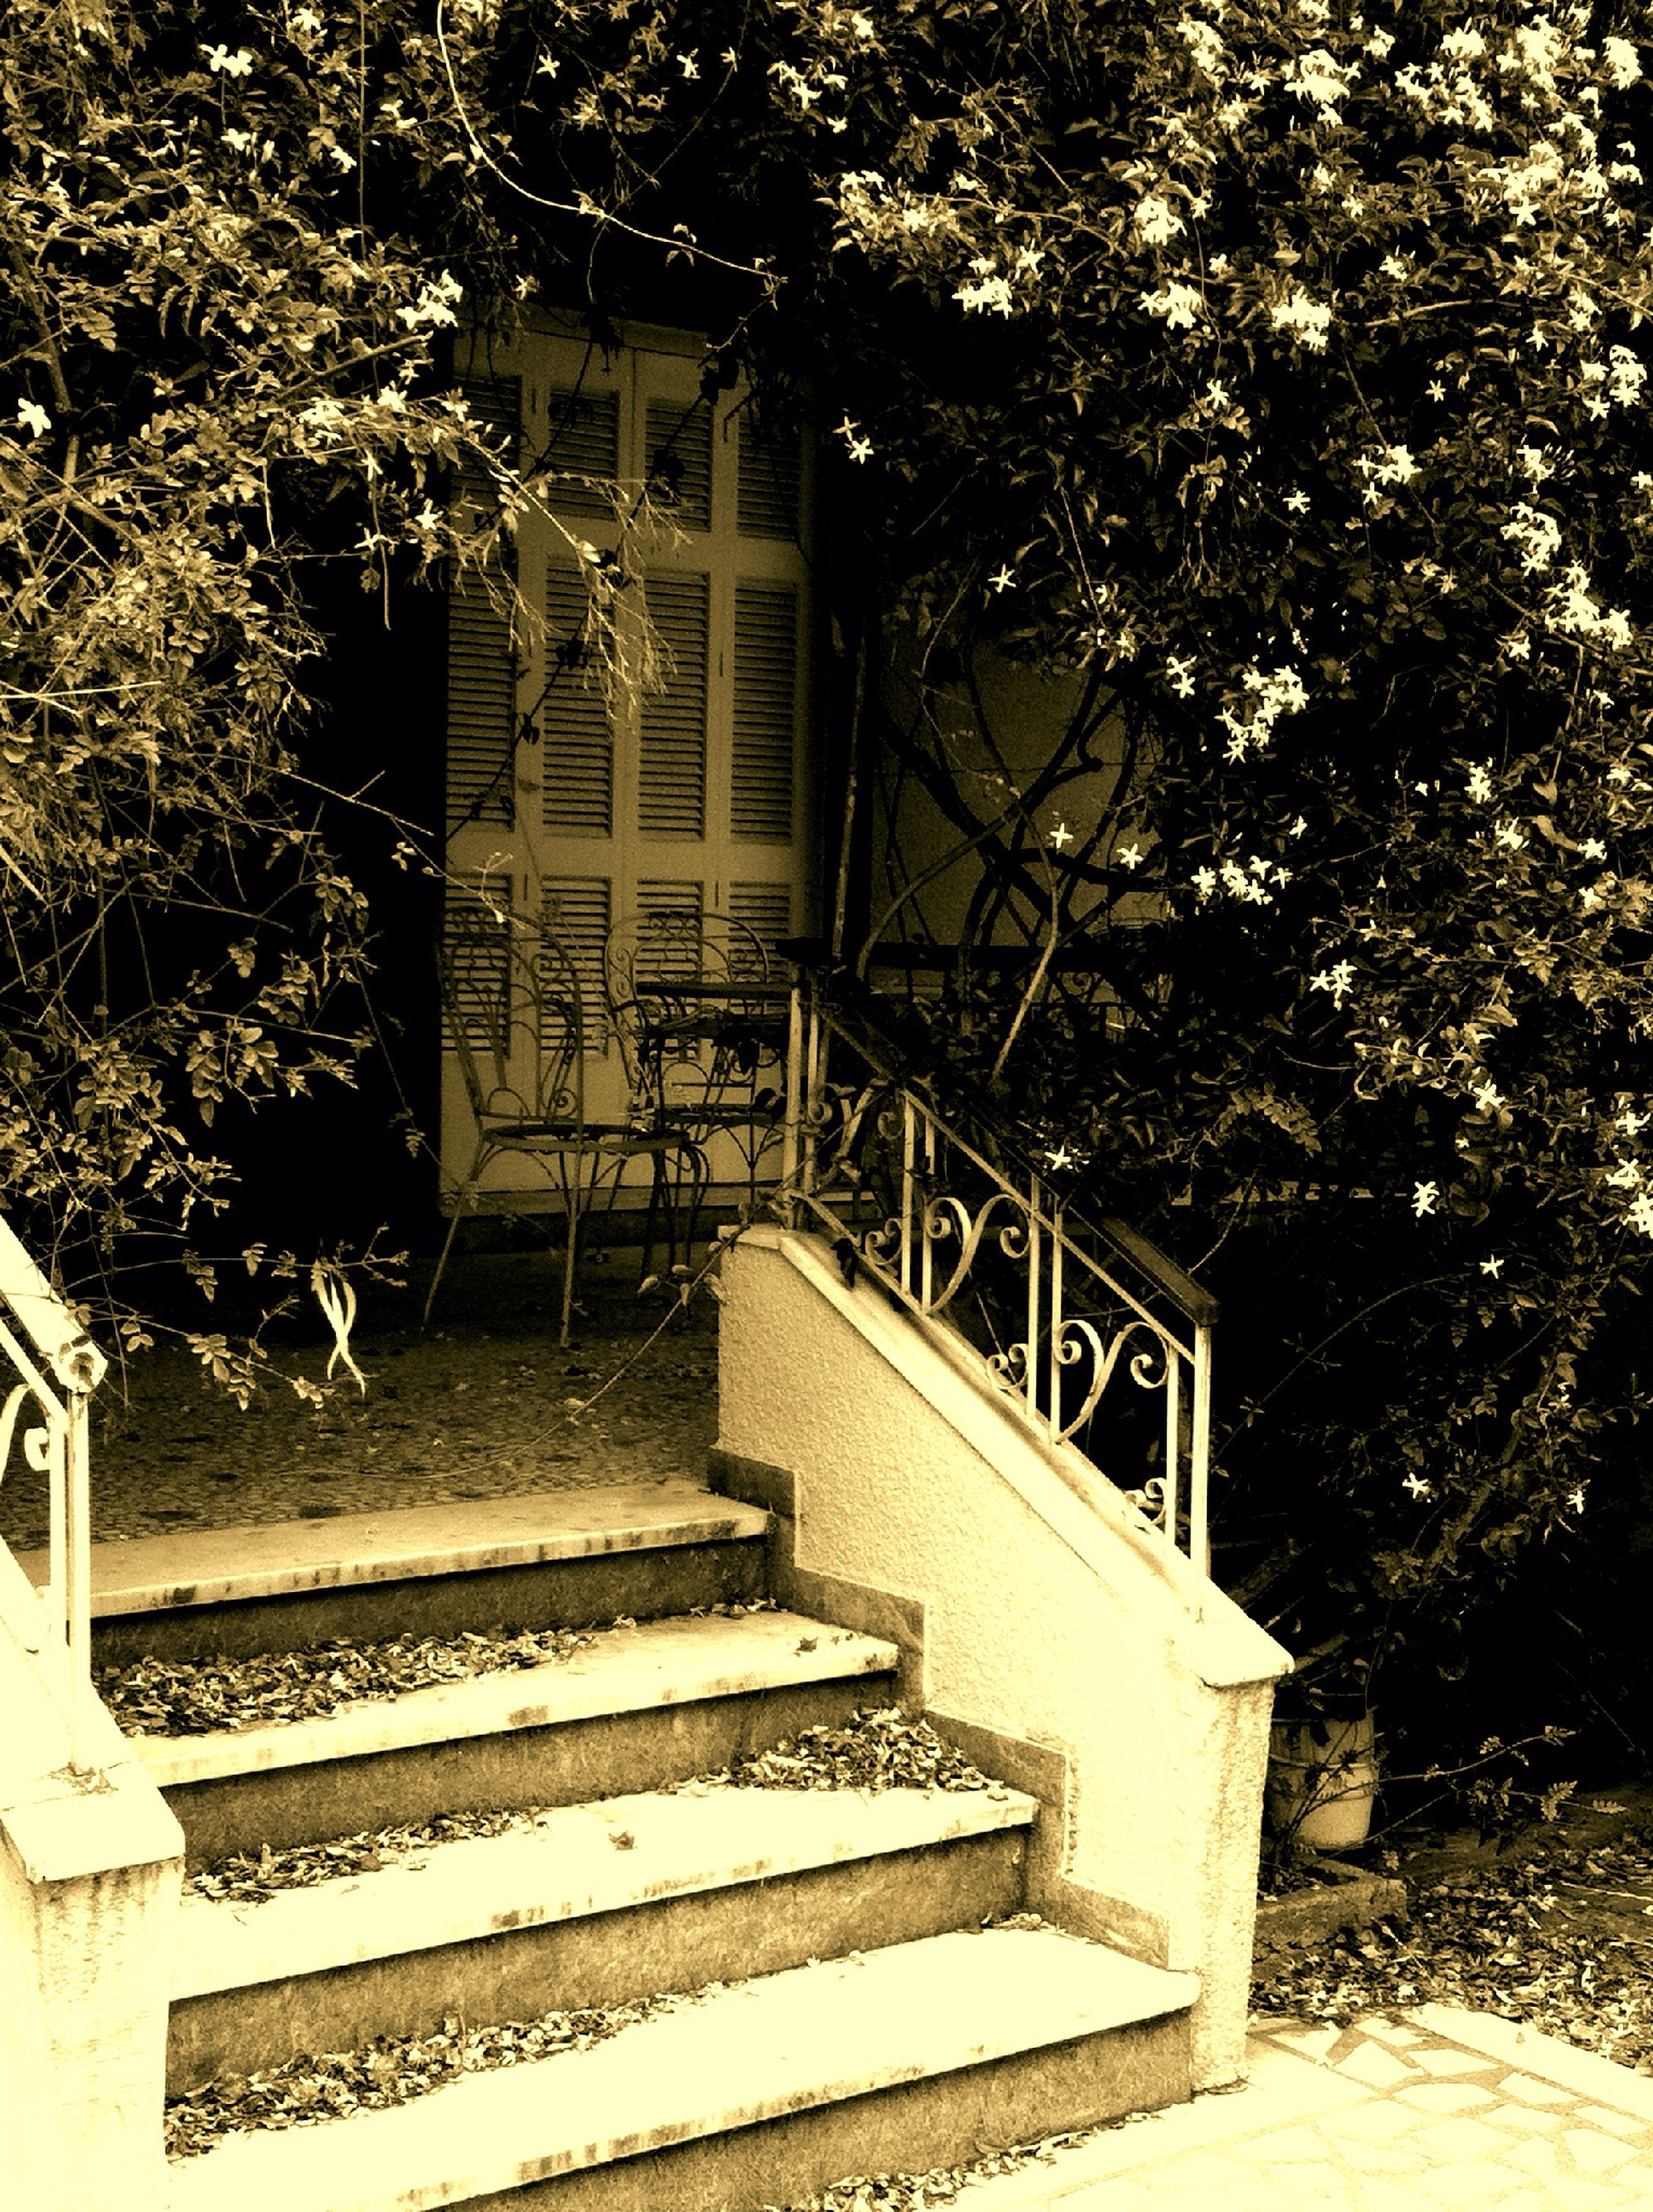 steps, built structure, tree, architecture, bench, staircase, building exterior, empty, steps and staircases, plant, growth, house, railing, absence, chair, entrance, sunlight, day, wood - material, park - man made space